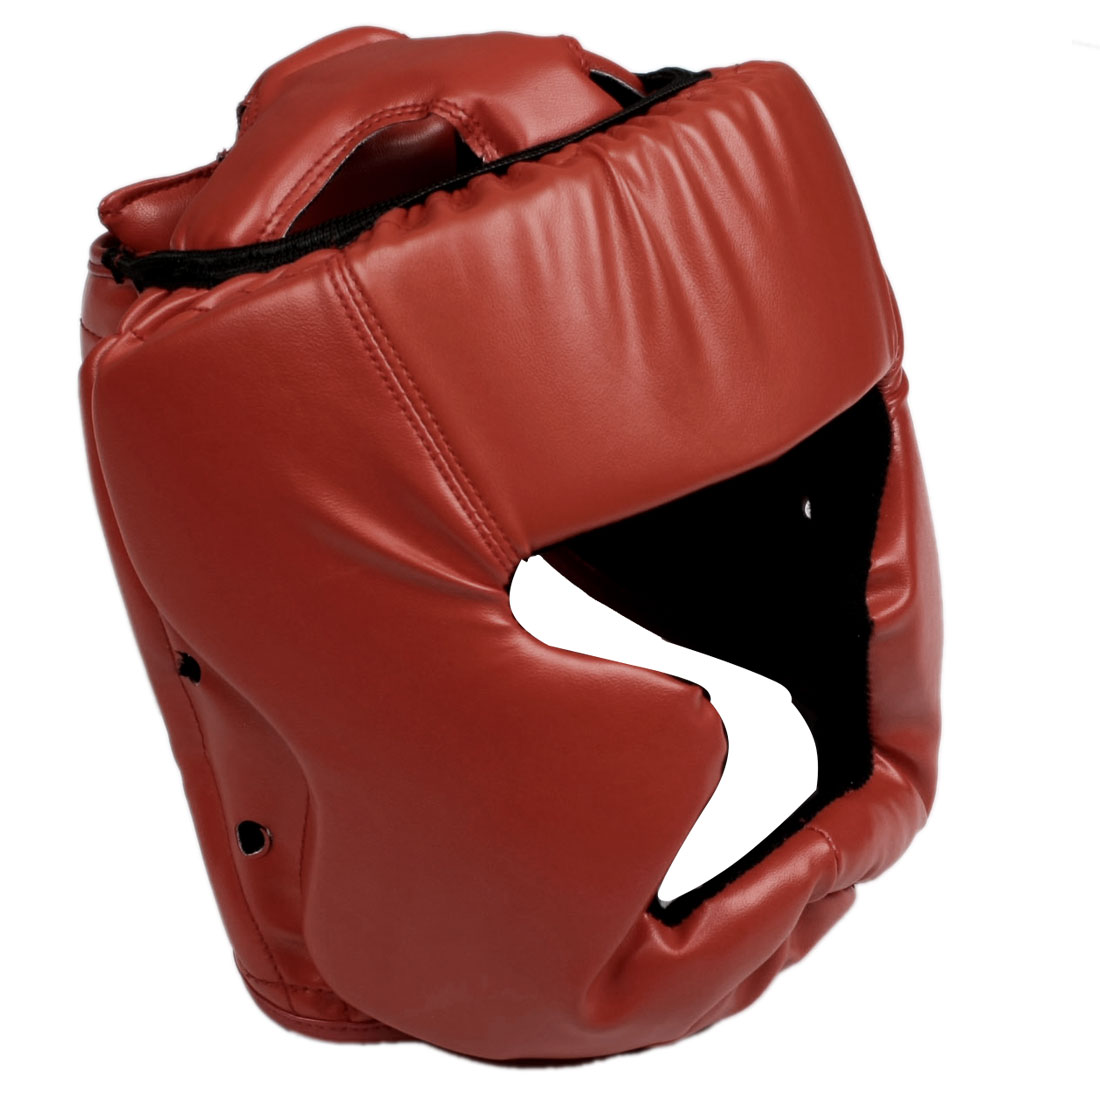 Adult Red Faux Leather Foam Head Protector Taekwondo Helmet Boxing Headgear